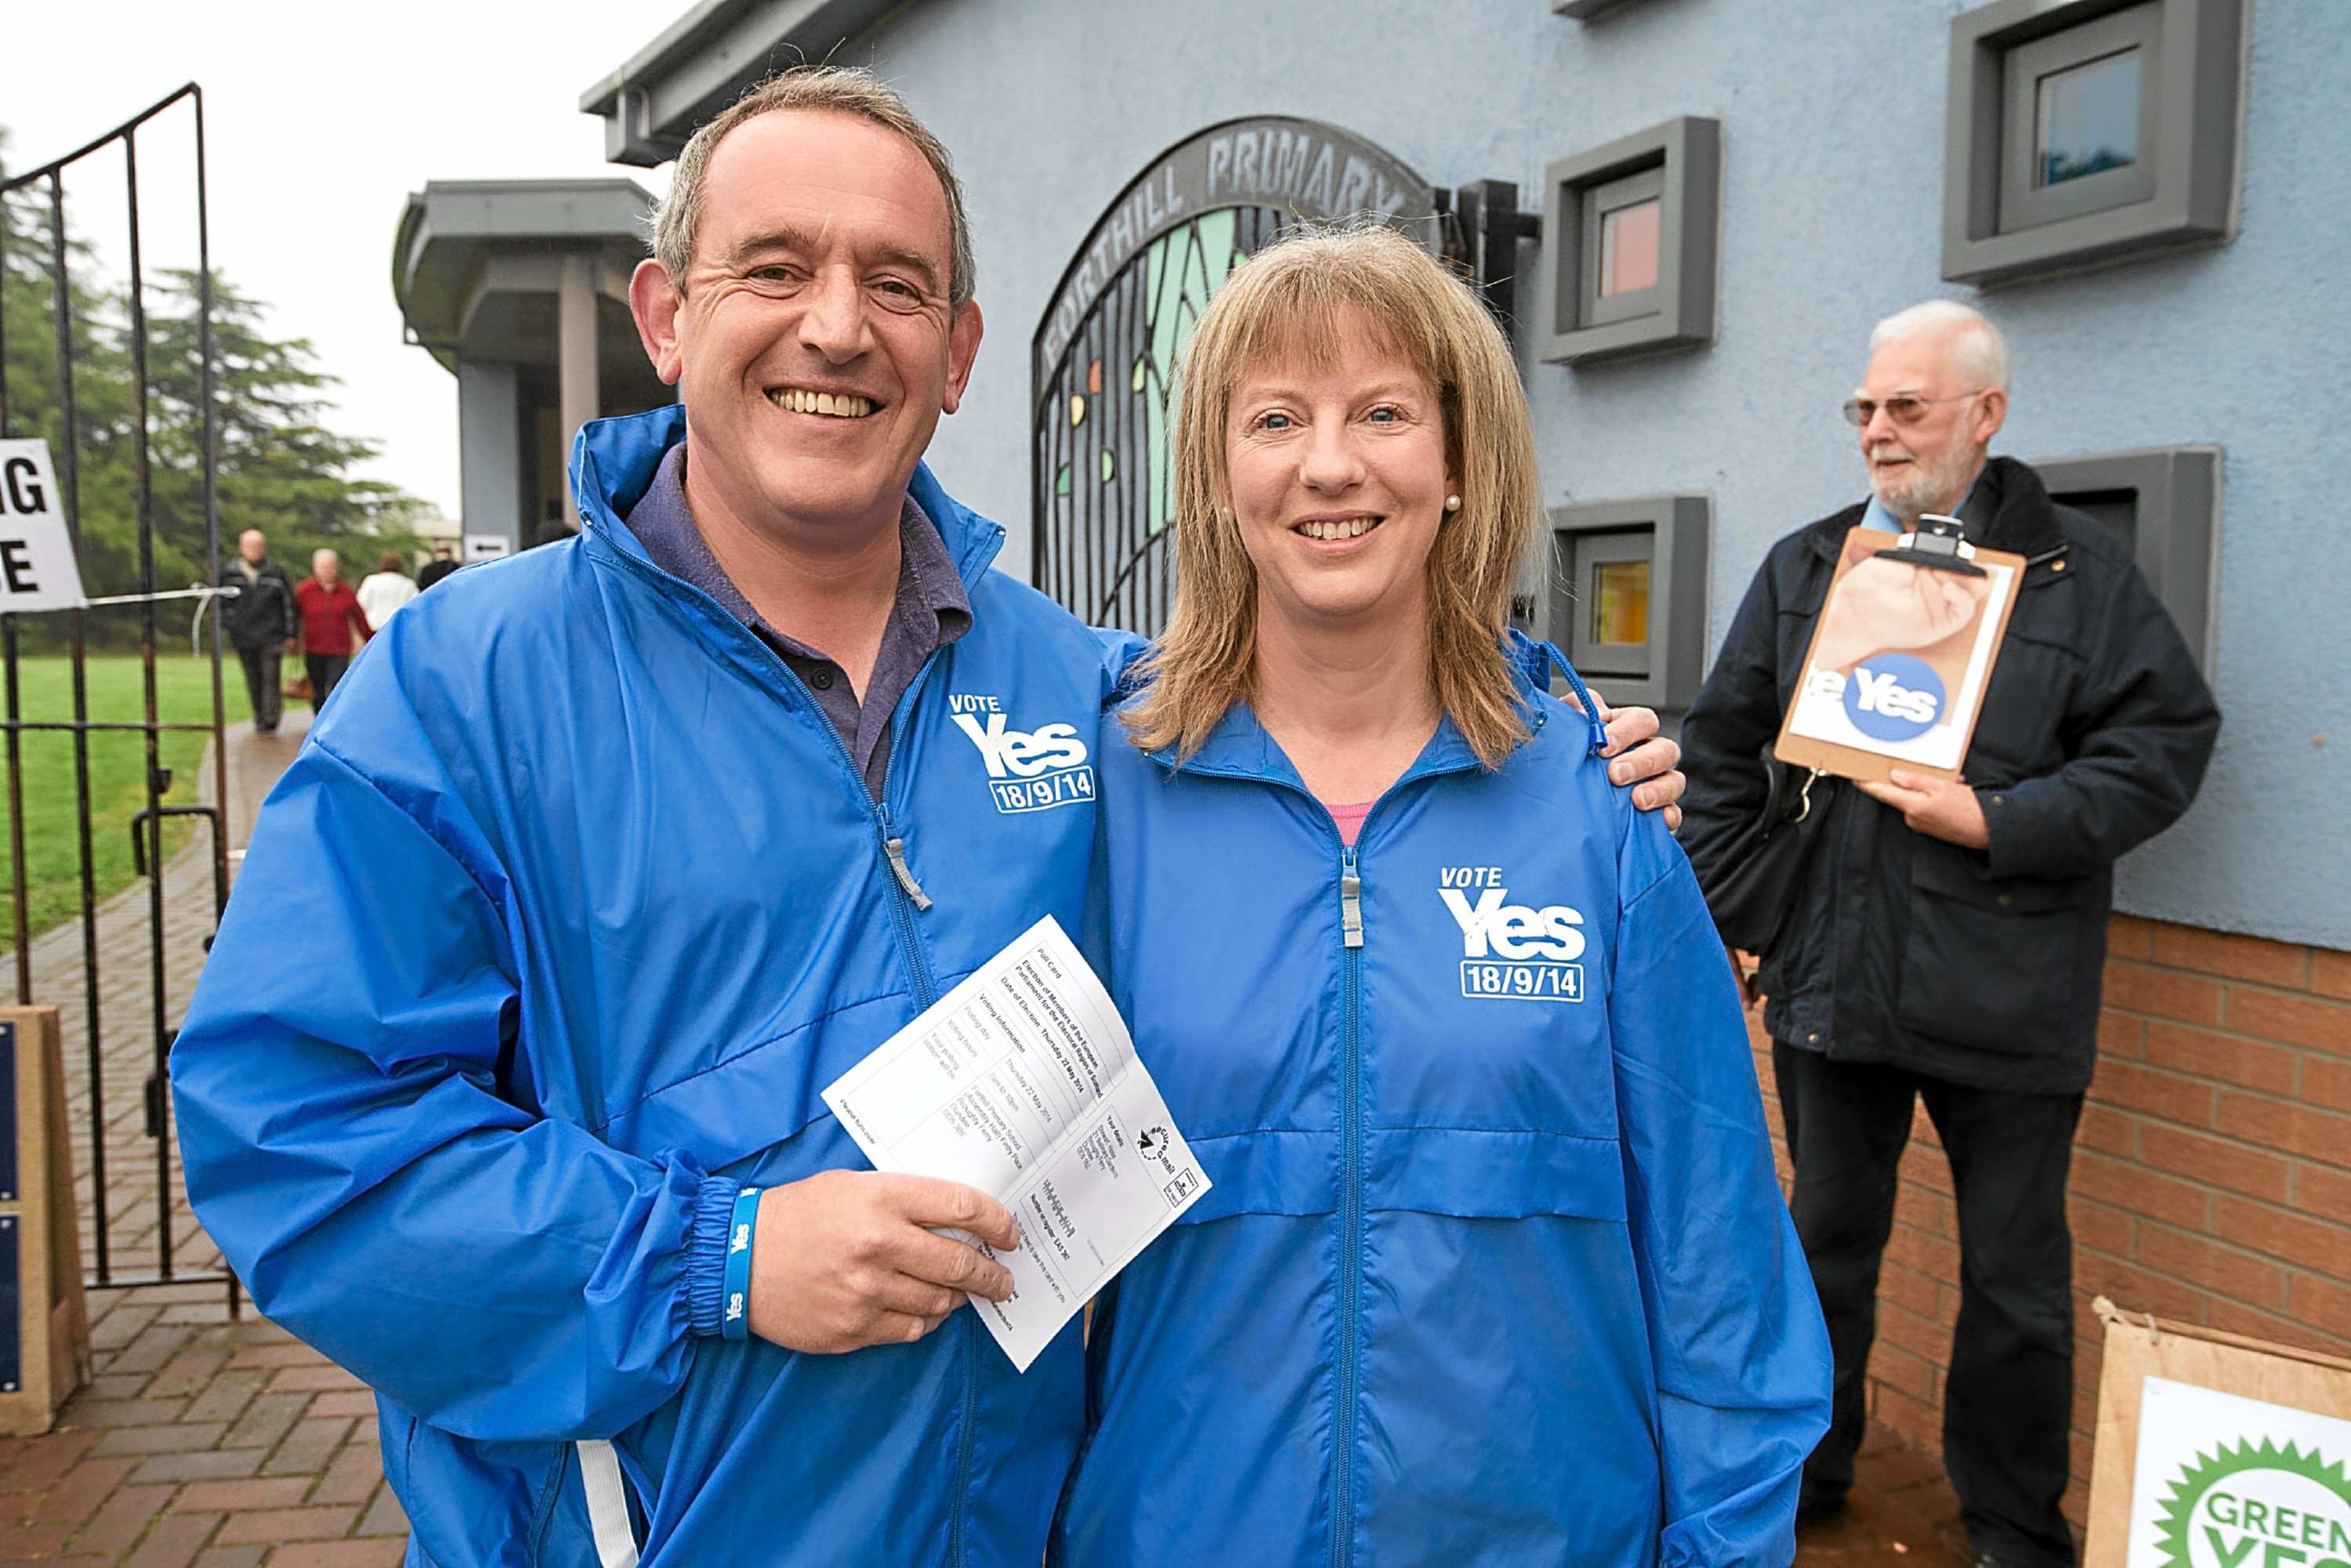 Stewart Hosie and Shona Robison in Broughty Ferry during the Scottish independence vote.